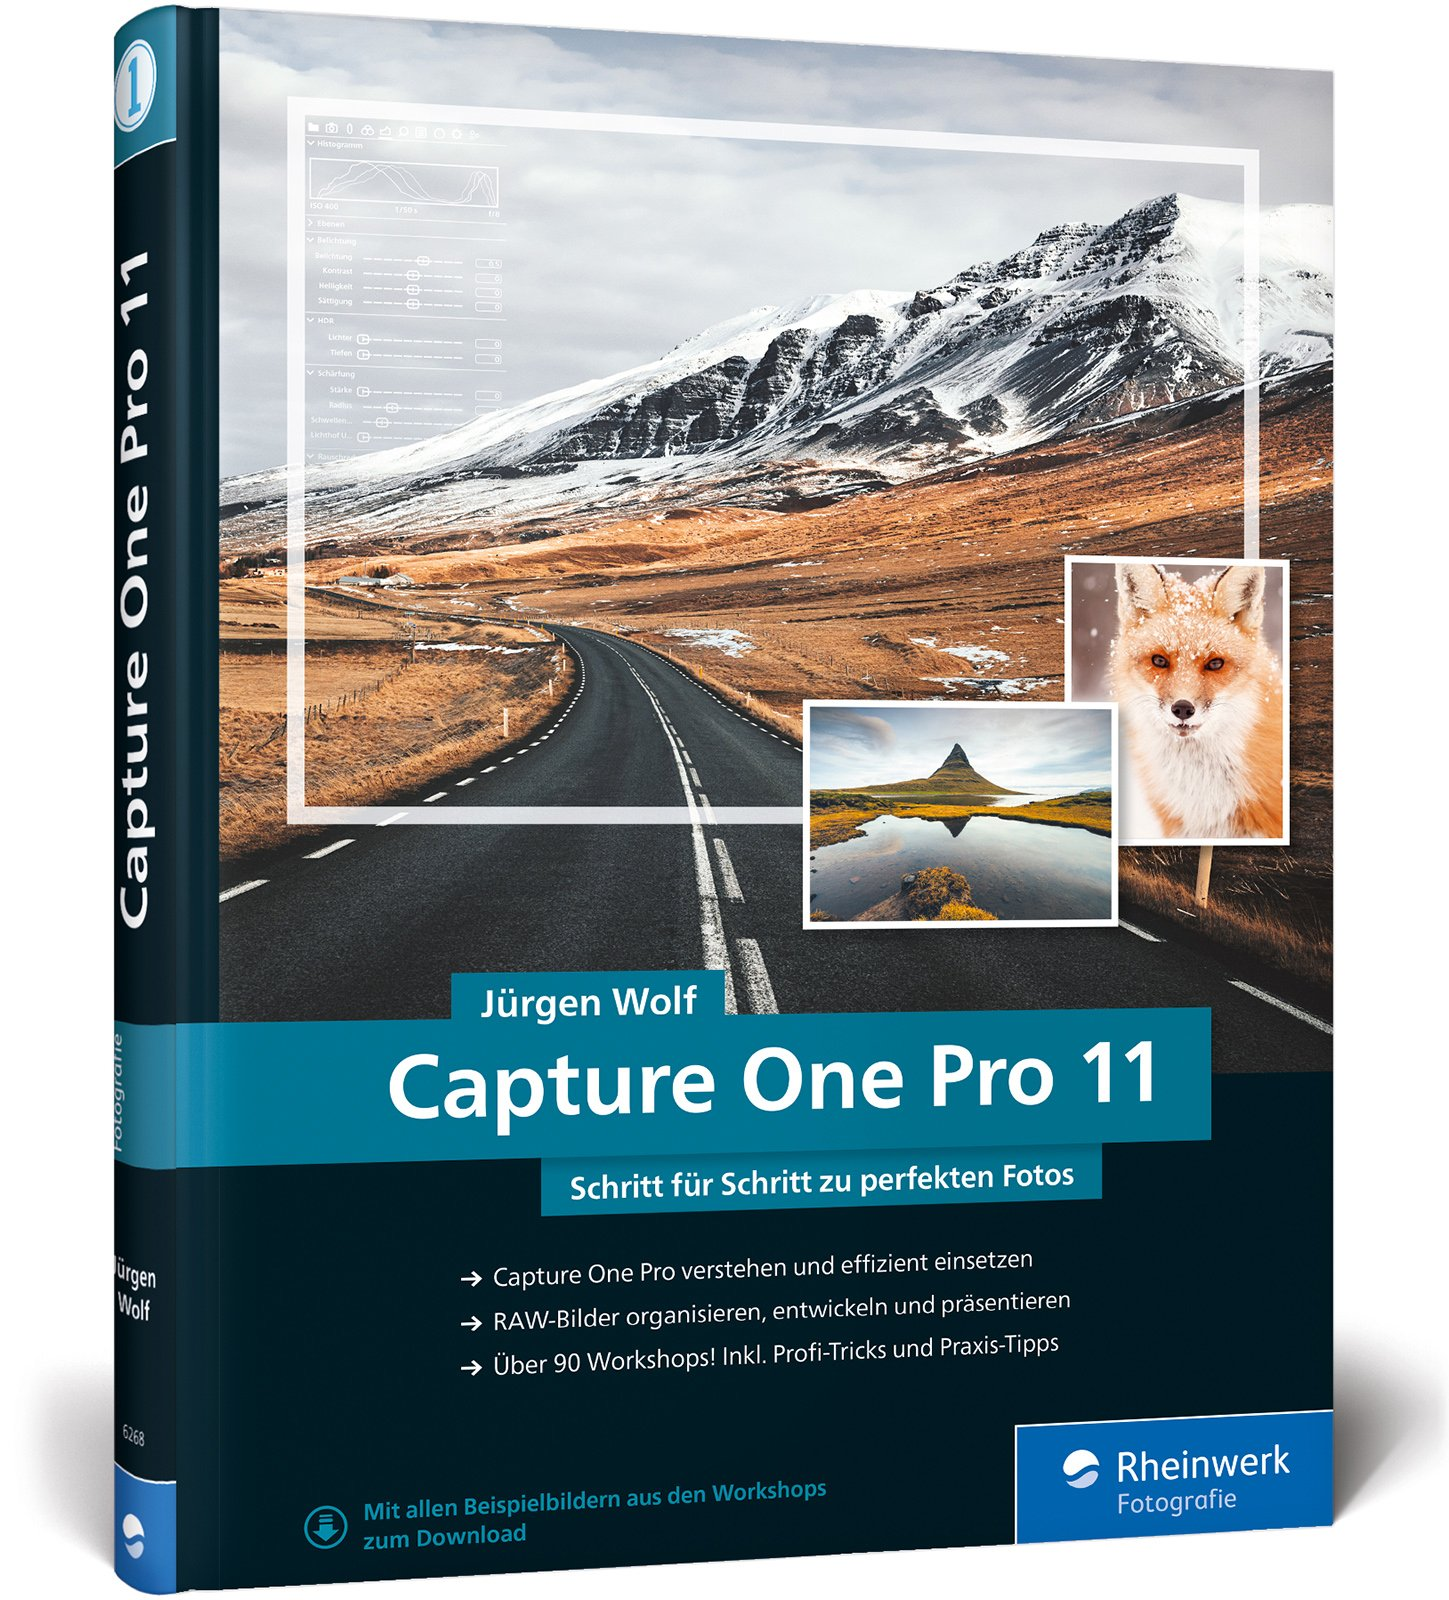 Capture One Pro 11 Buch